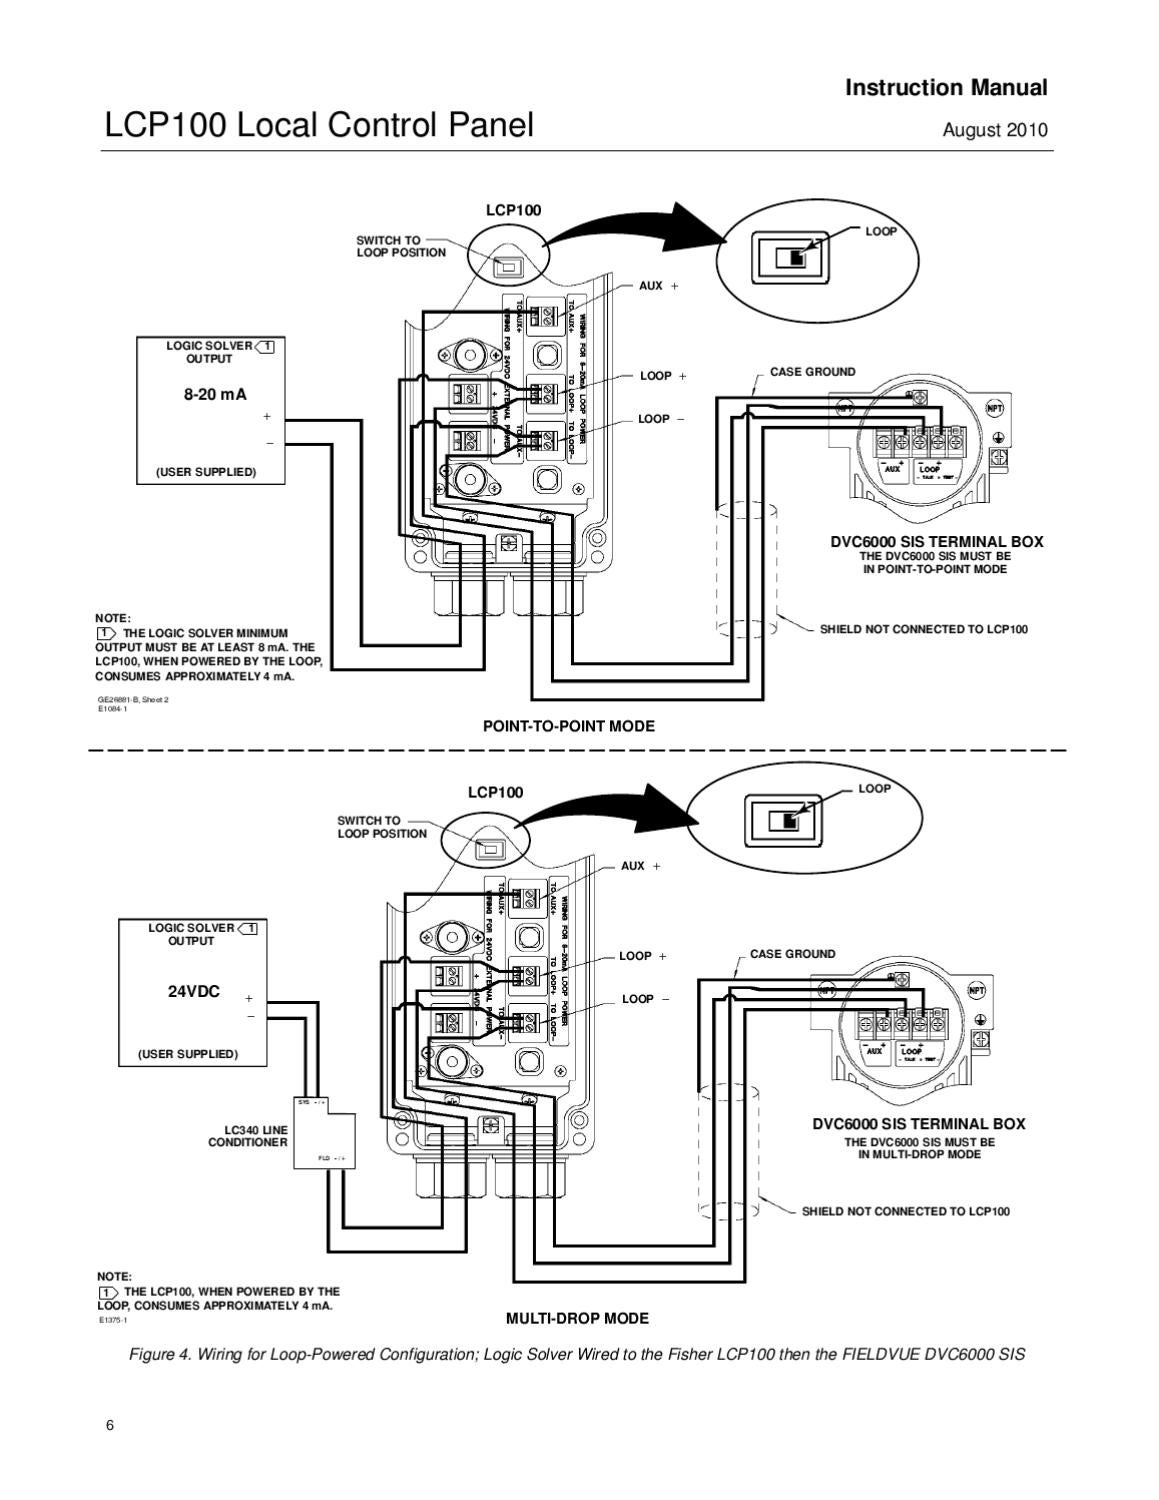 Lcp100 Control Panel Instruction Manual Aug 2010 By Rmc Process Controls  U0026 Filtration  Inc